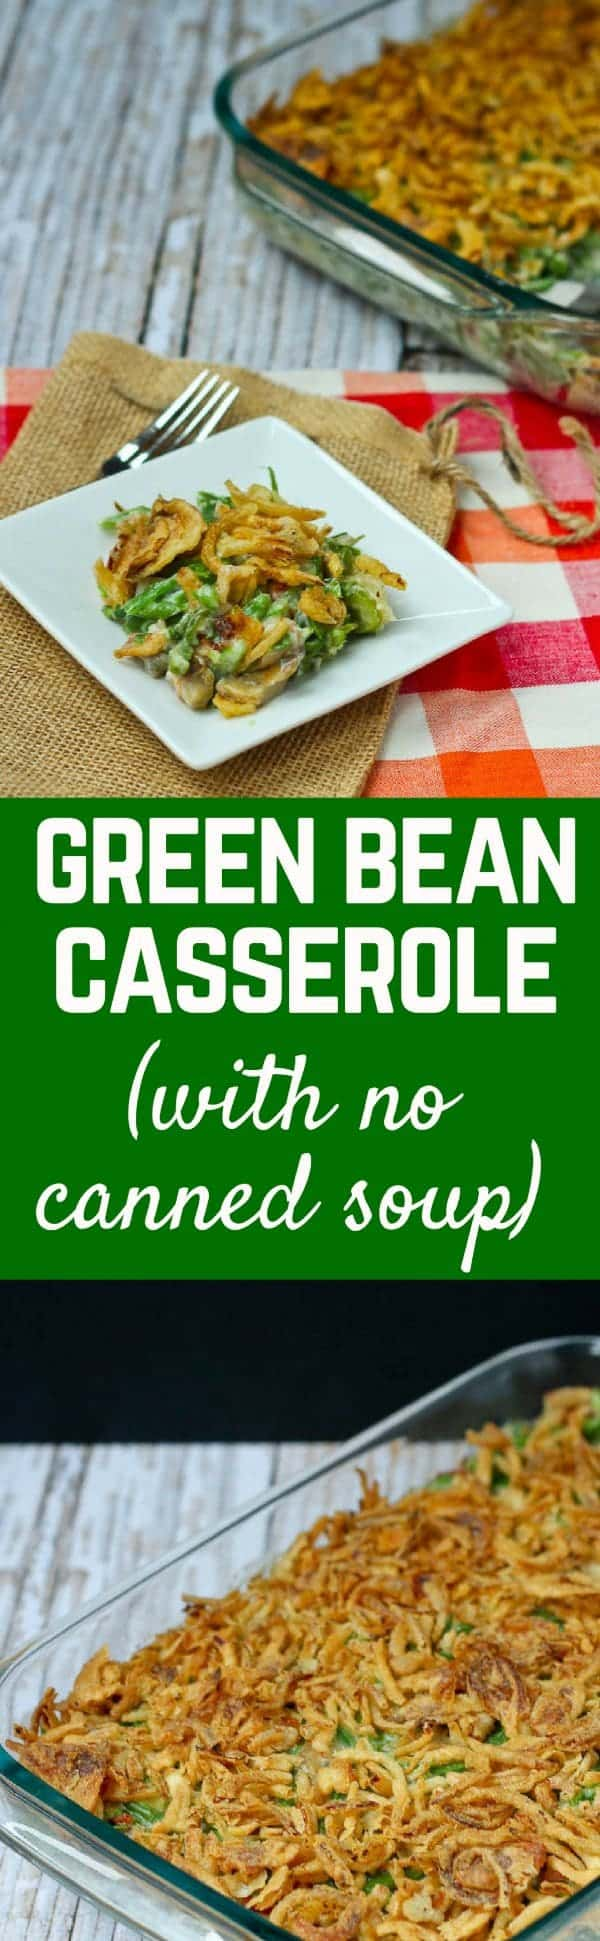 This green bean casserole recipe requires no opening of cans. It's deliciously creamy without canned soup. And it's still simple to make! Get the recipe on RachelCooks.com!